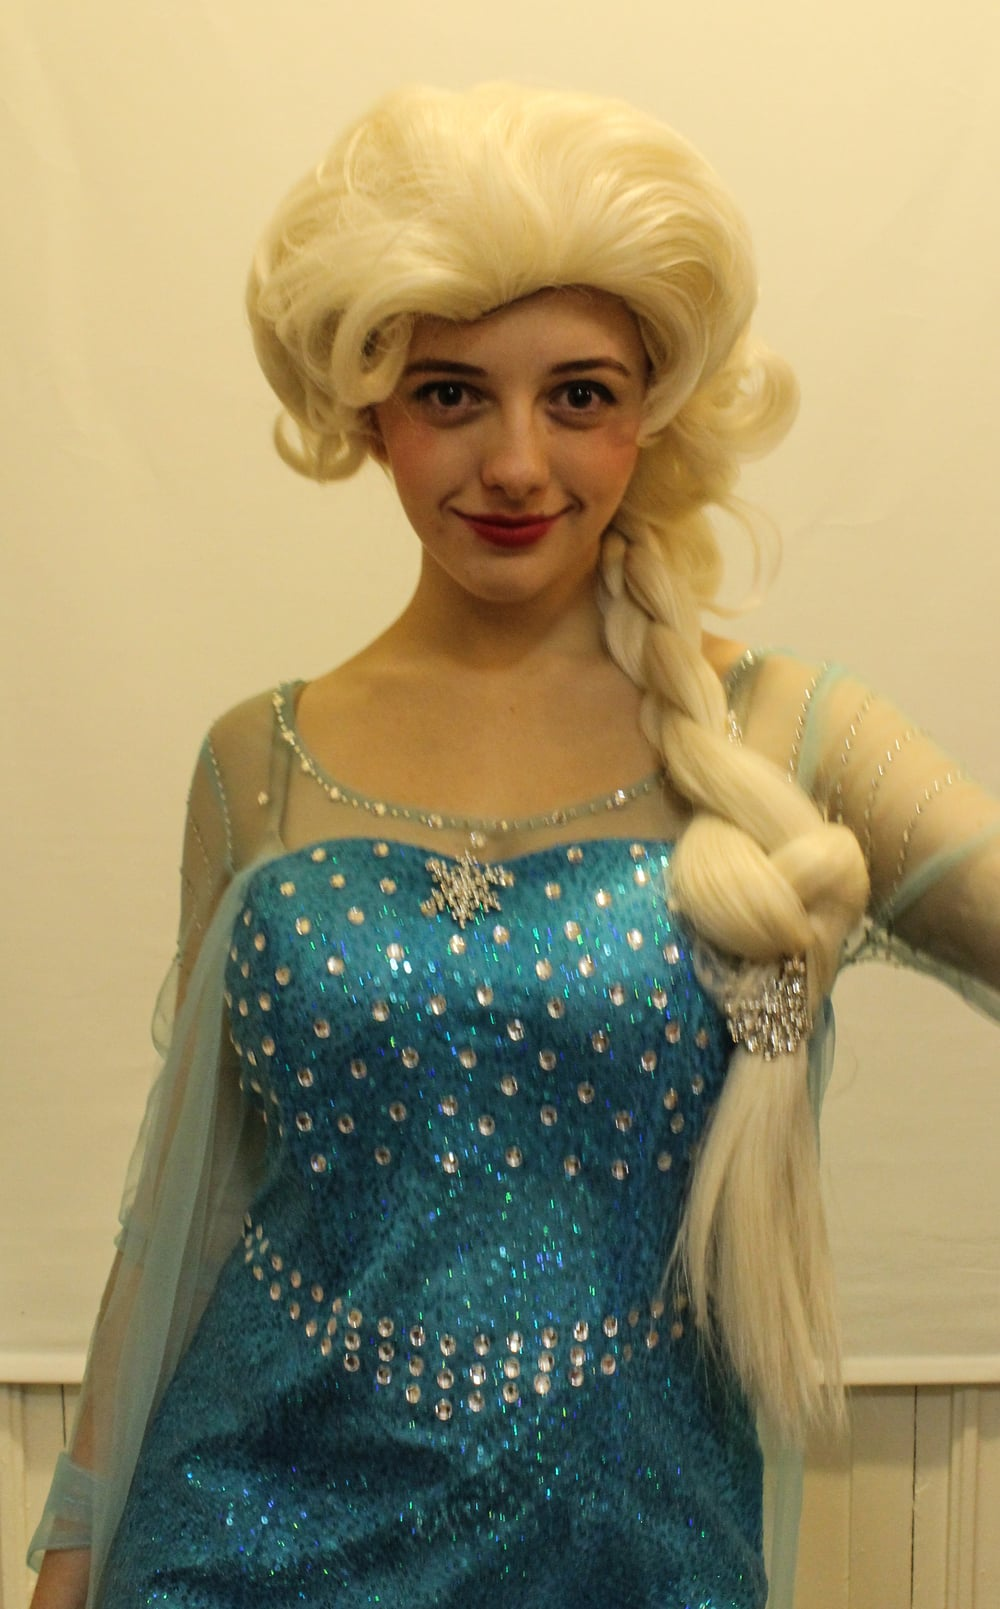 princess elsa edited 3.jpg